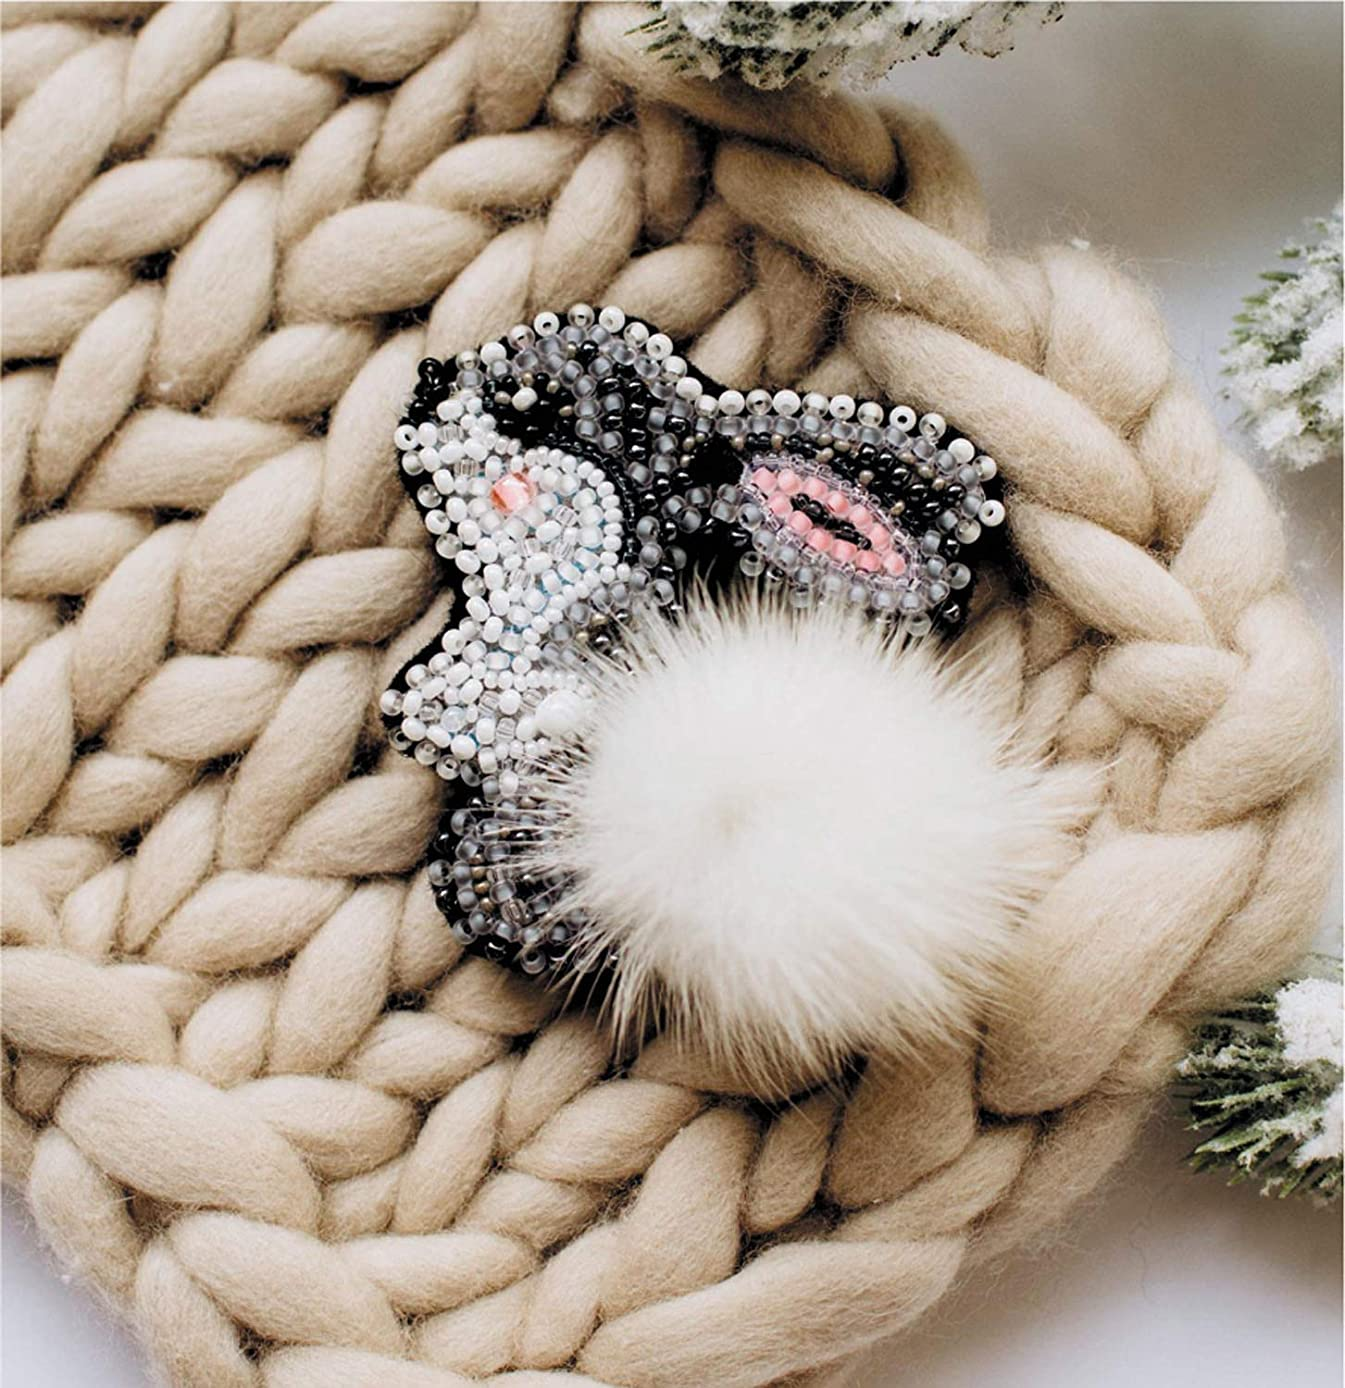 Rabbit DIY Bead Embroidery Brooch kit AD-026- Needlework-Awesome European Quality- Abris Art-Modern Embroidery-Decoration, Magnet, Craft